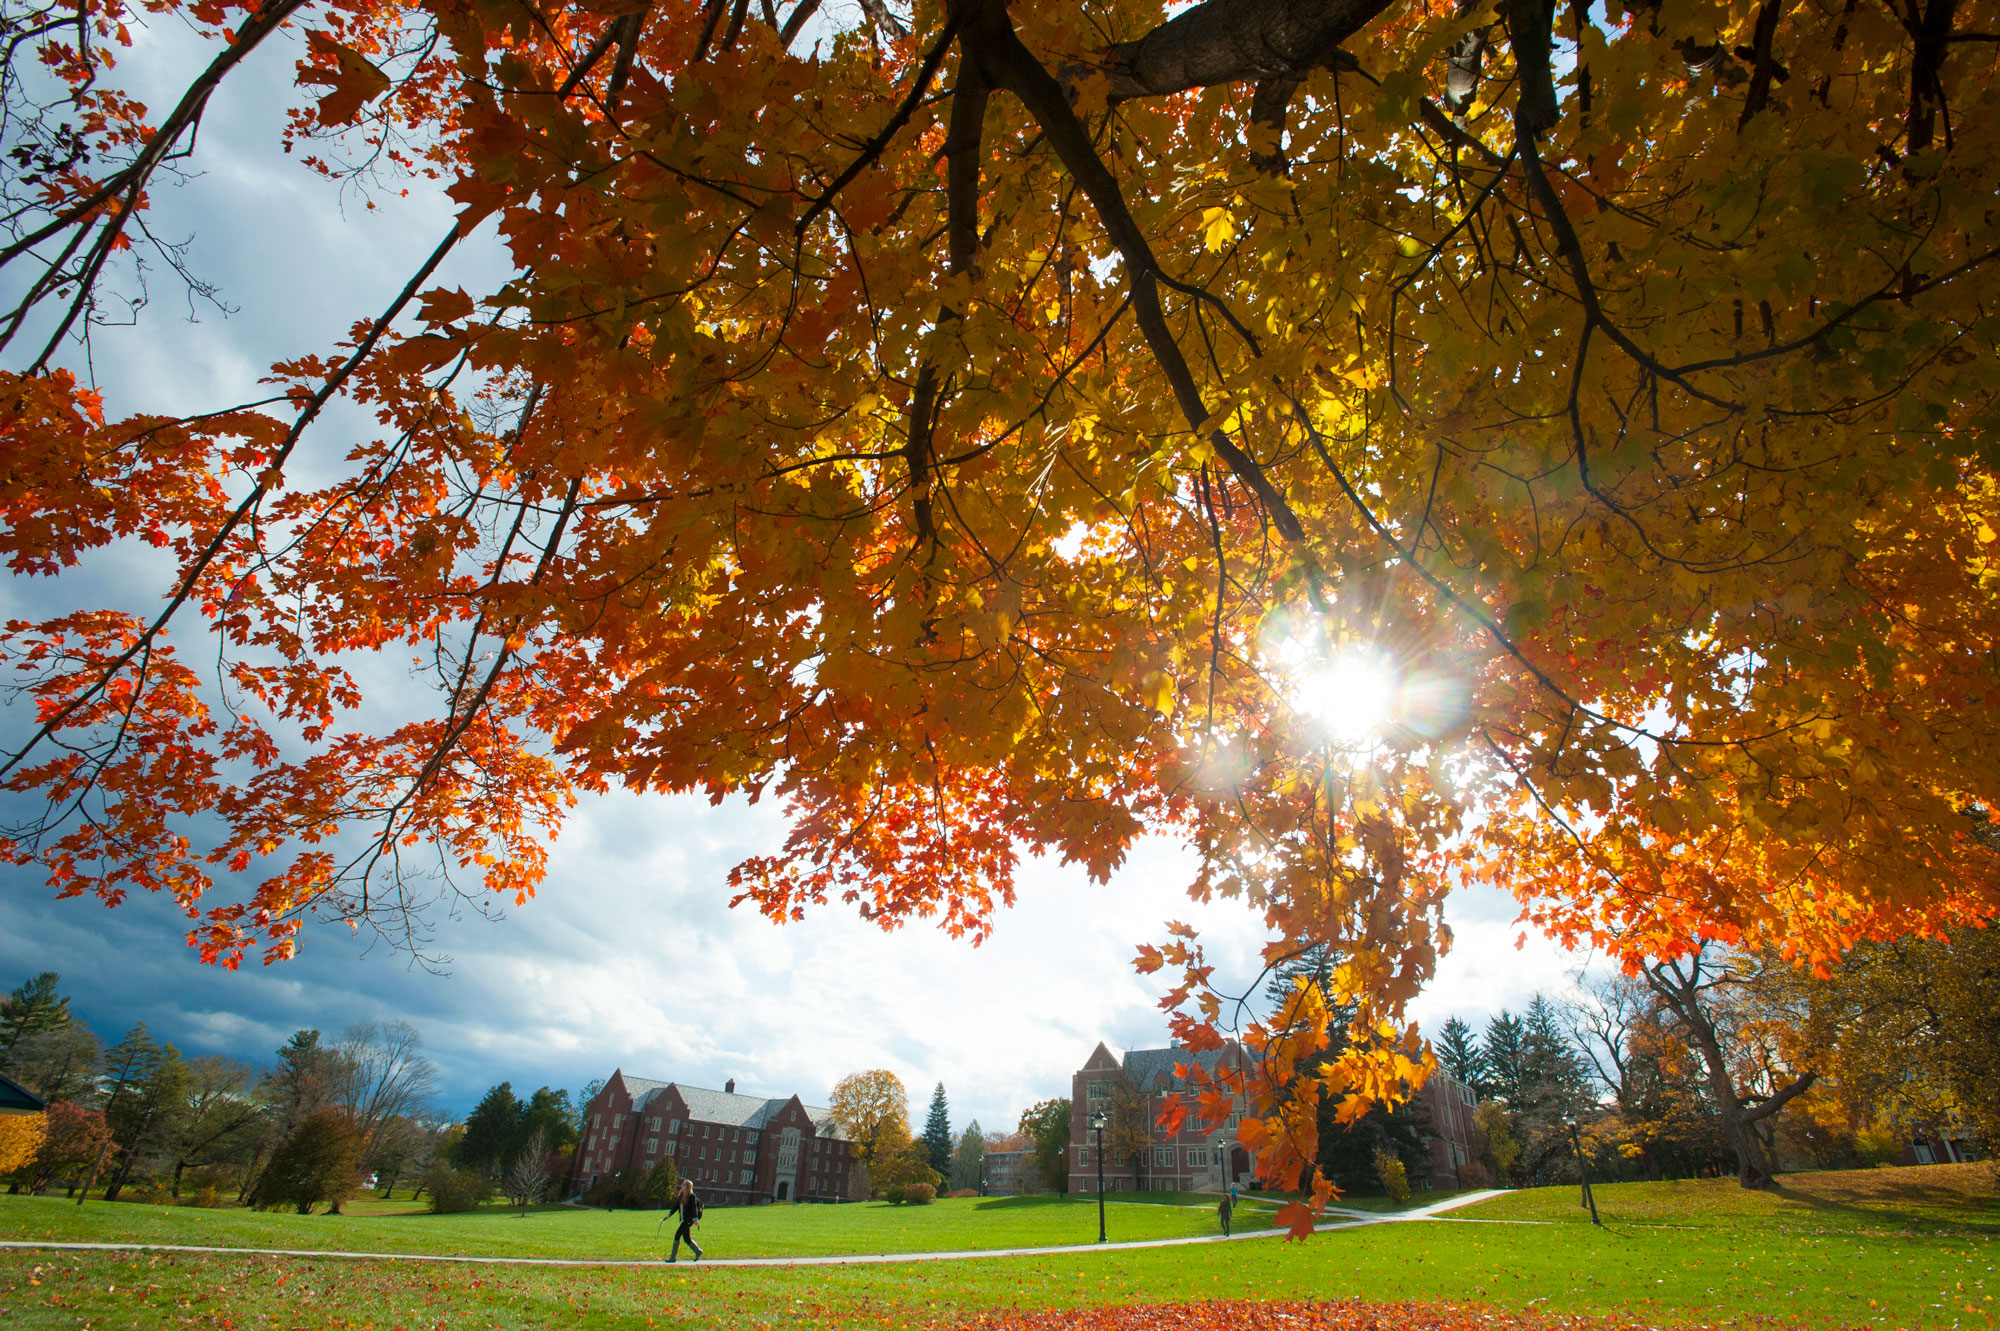 UConn Storrs campus in the fall